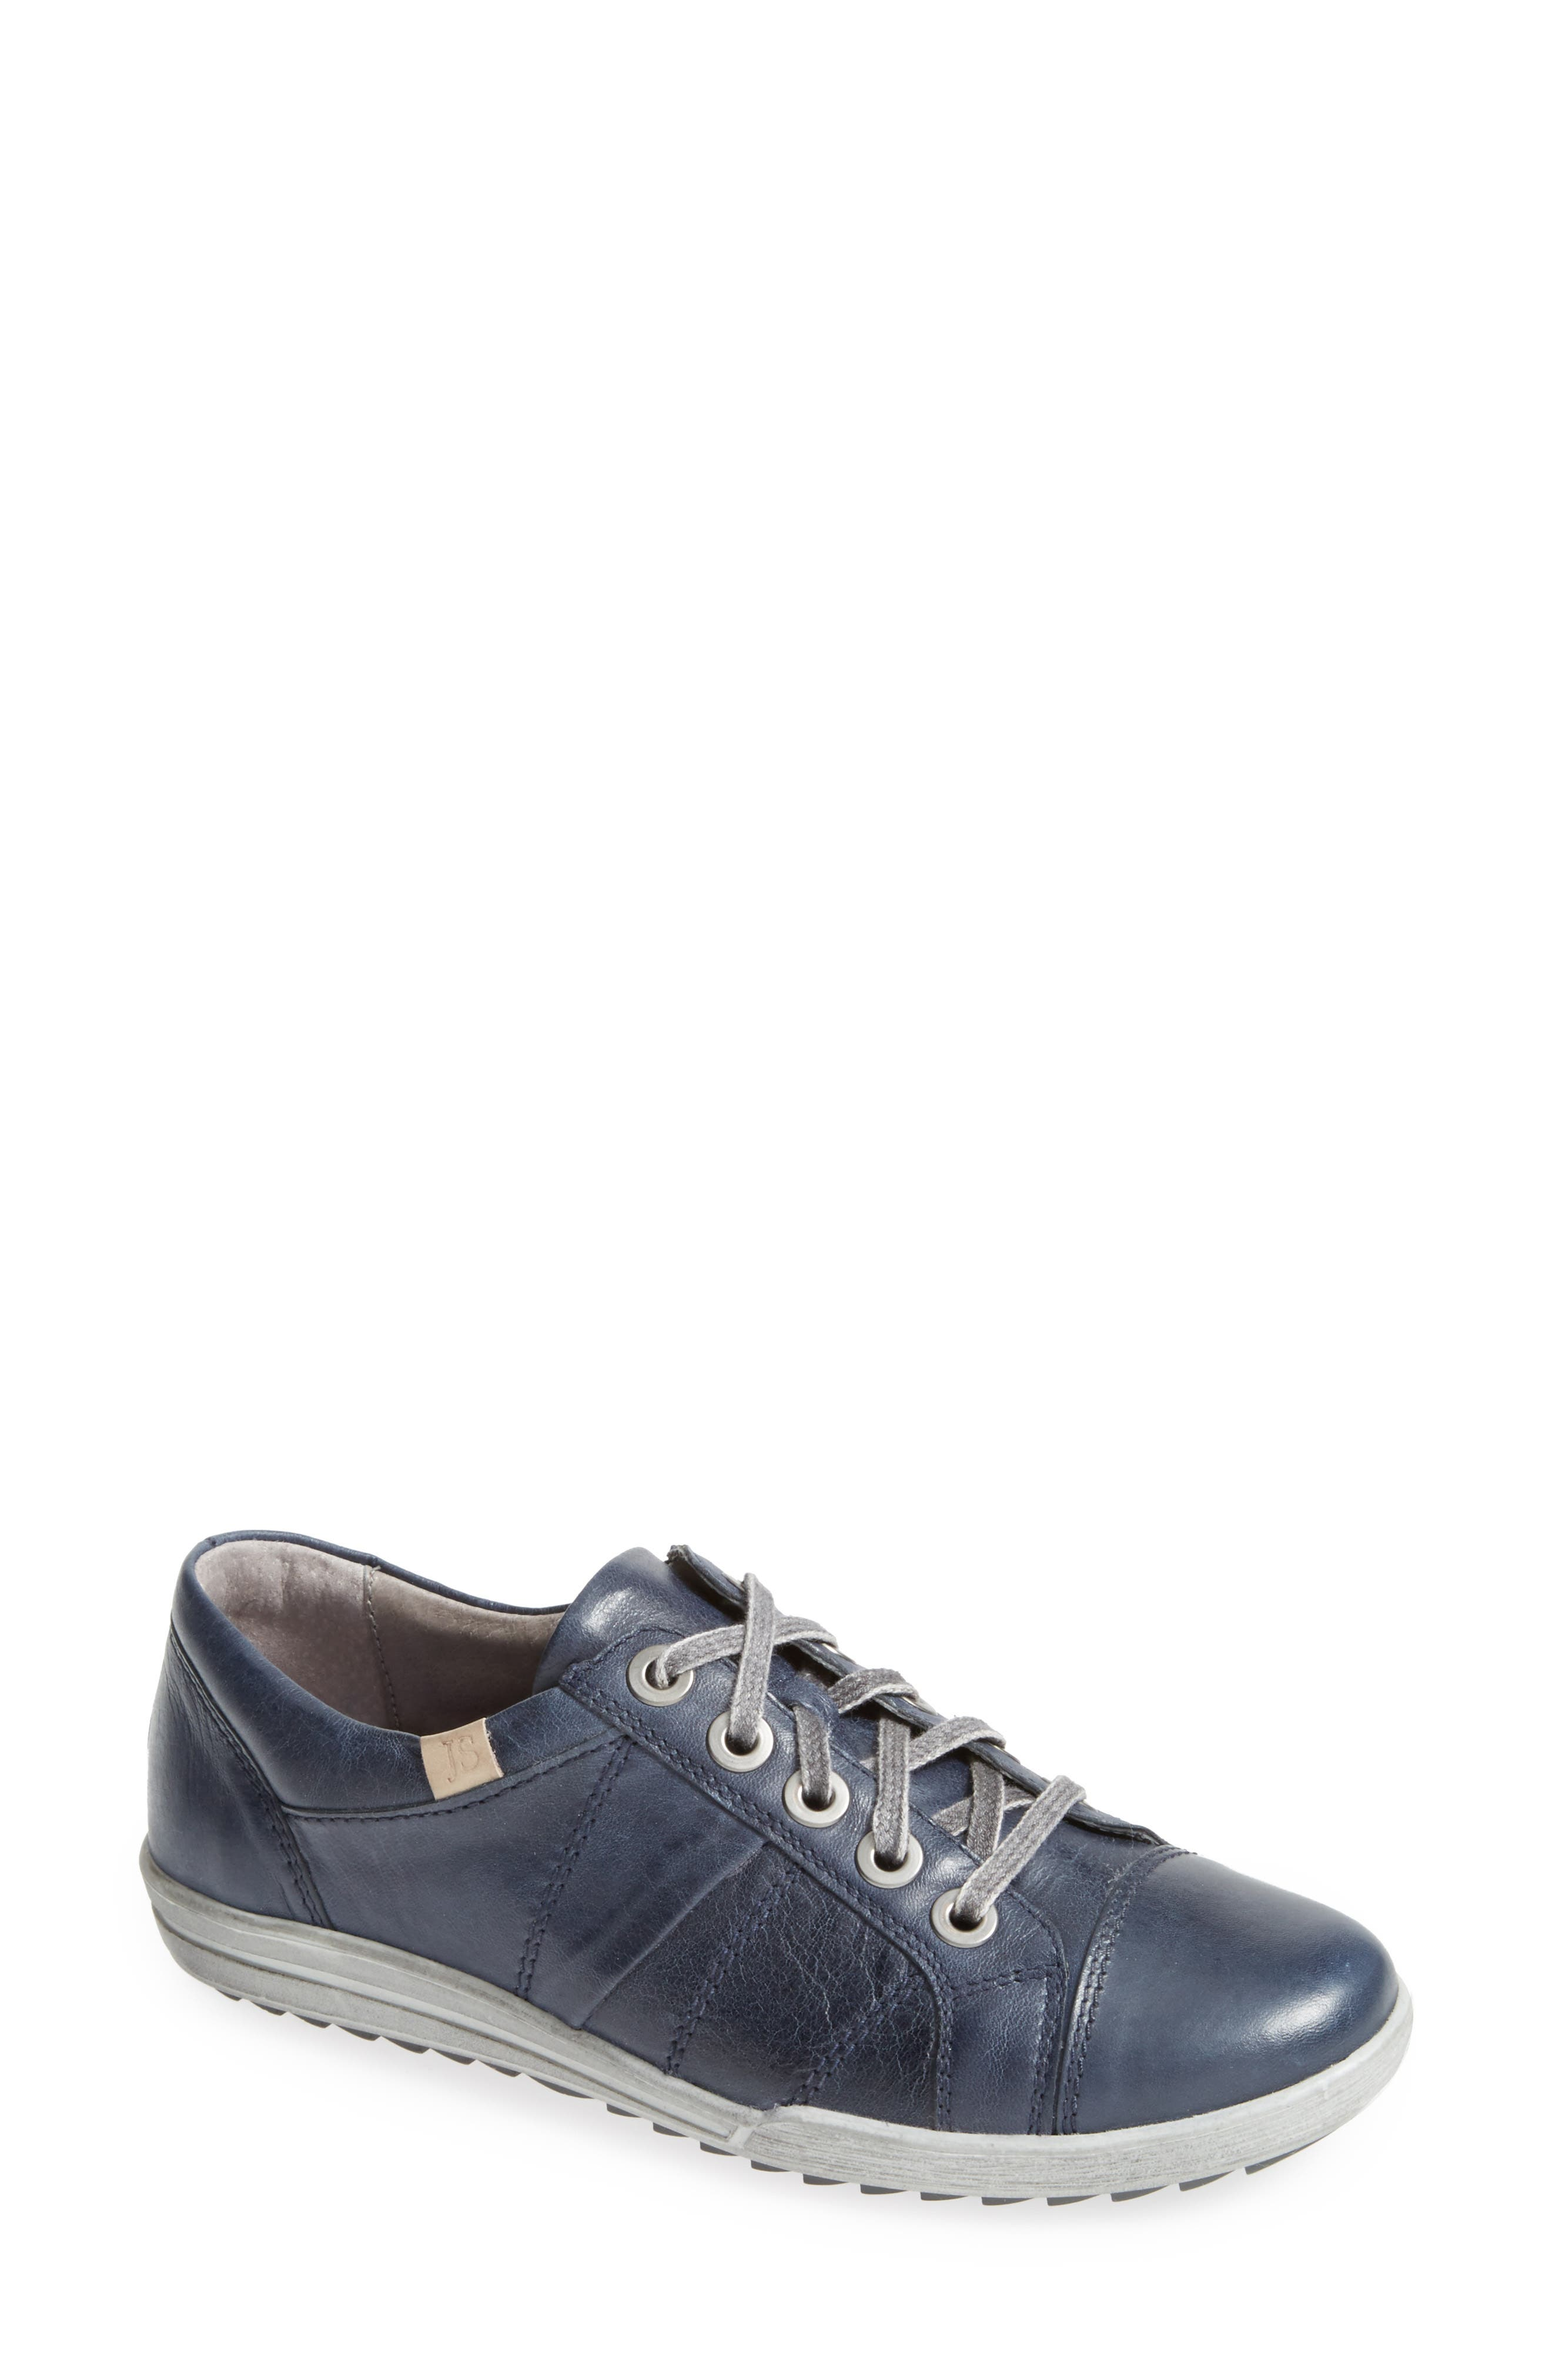 'Dany 05' Leather Sneaker,                             Alternate thumbnail 34, color,